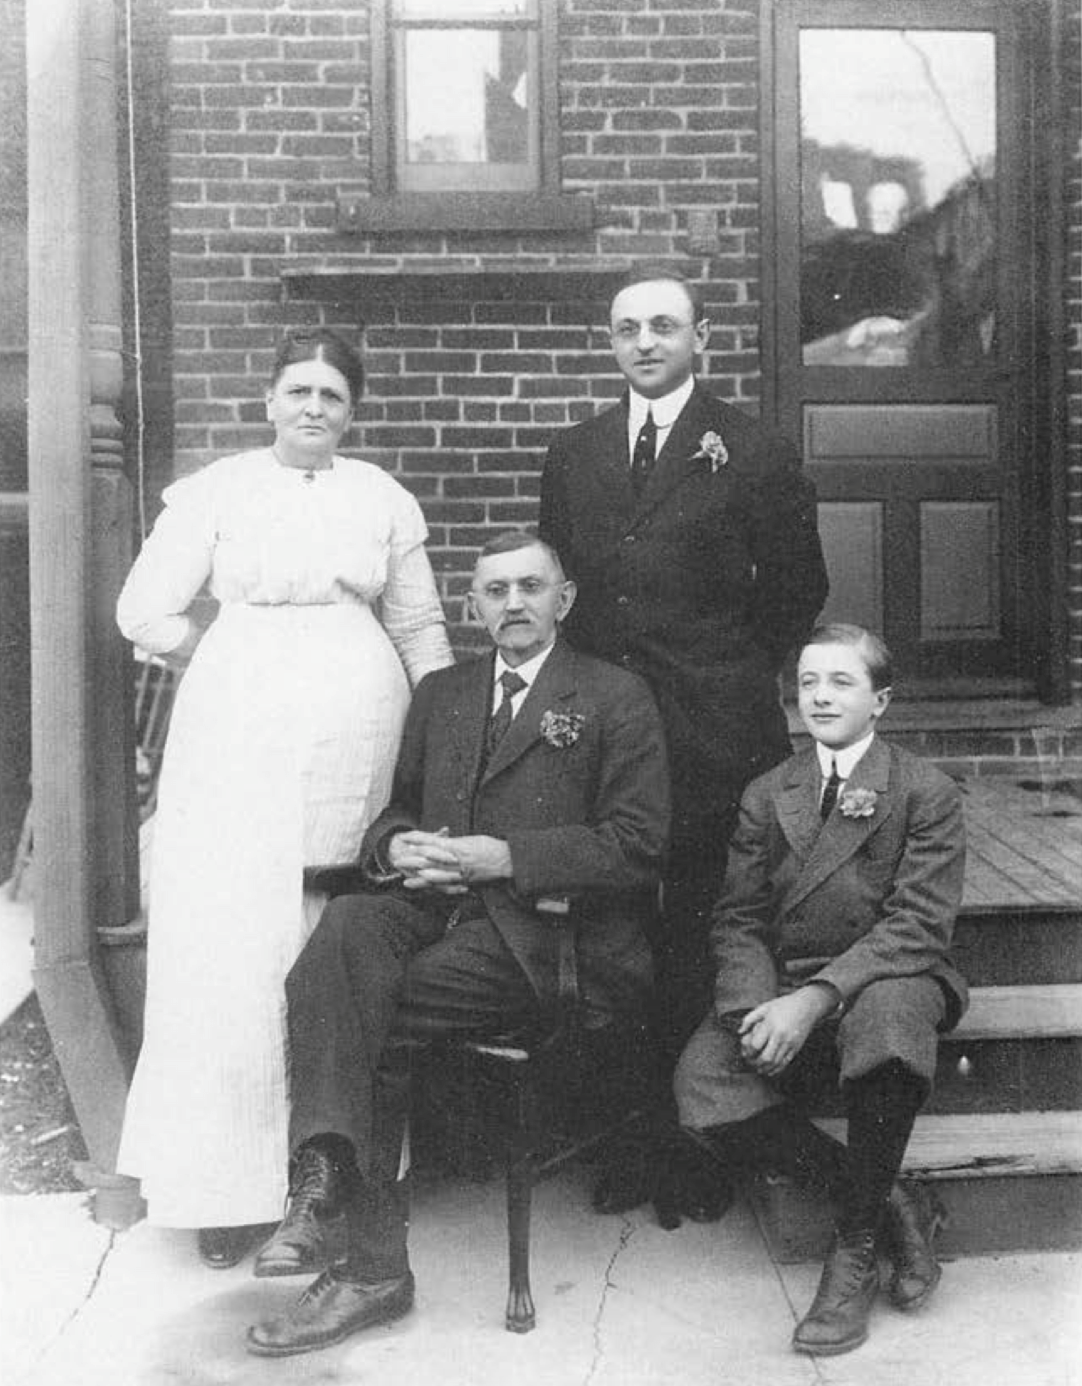 A young Frank Buchman (3rd from left) with parents Sarah and Franklin, and brother Dan. 